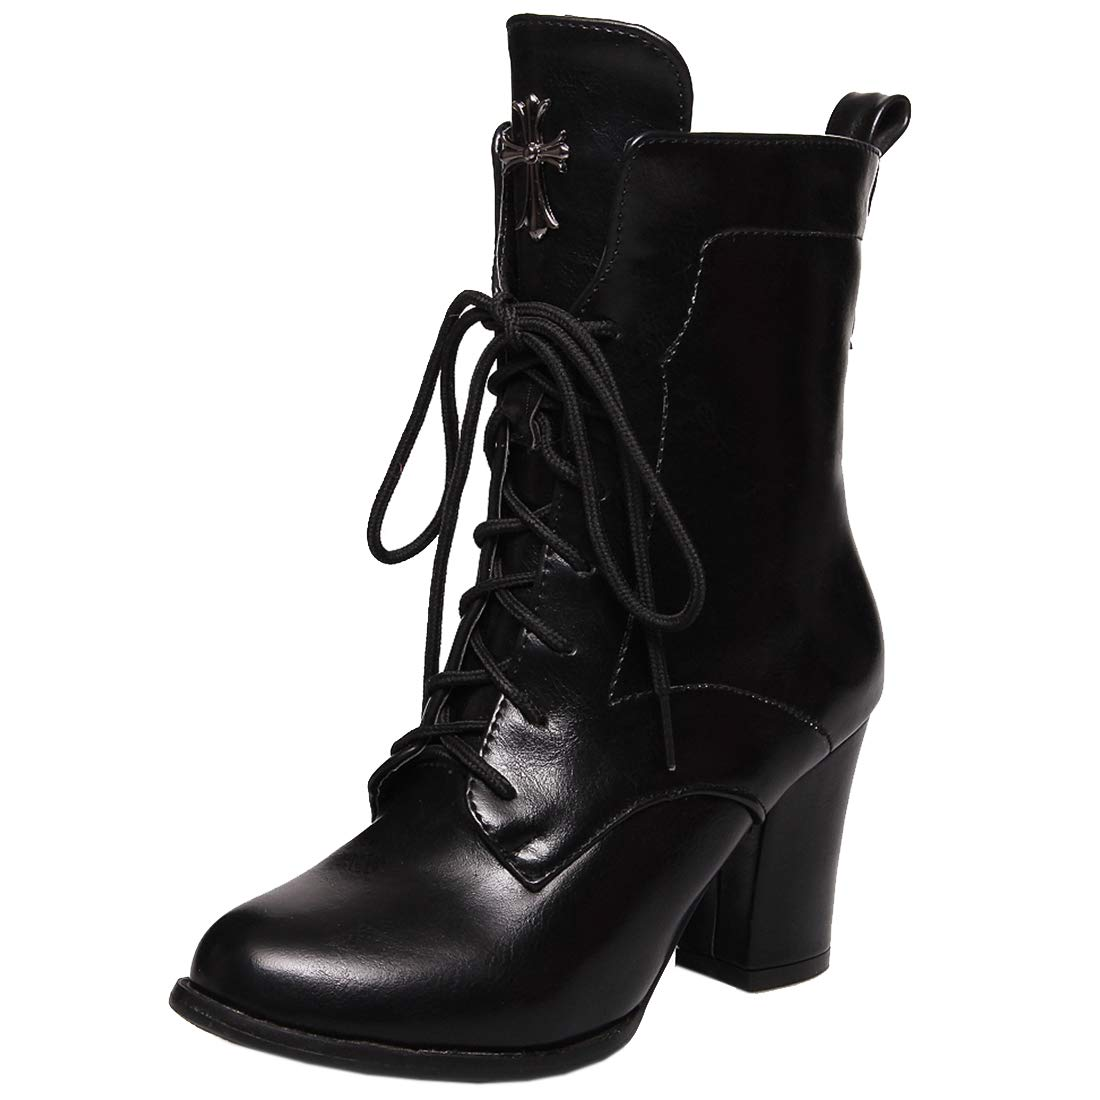 1b89306ab4 Vitalo Womens Lace Up Chunky High Heel Ankle Boots Zip Up Autumn Winter  Shoes: Amazon.co.uk: Shoes & Bags